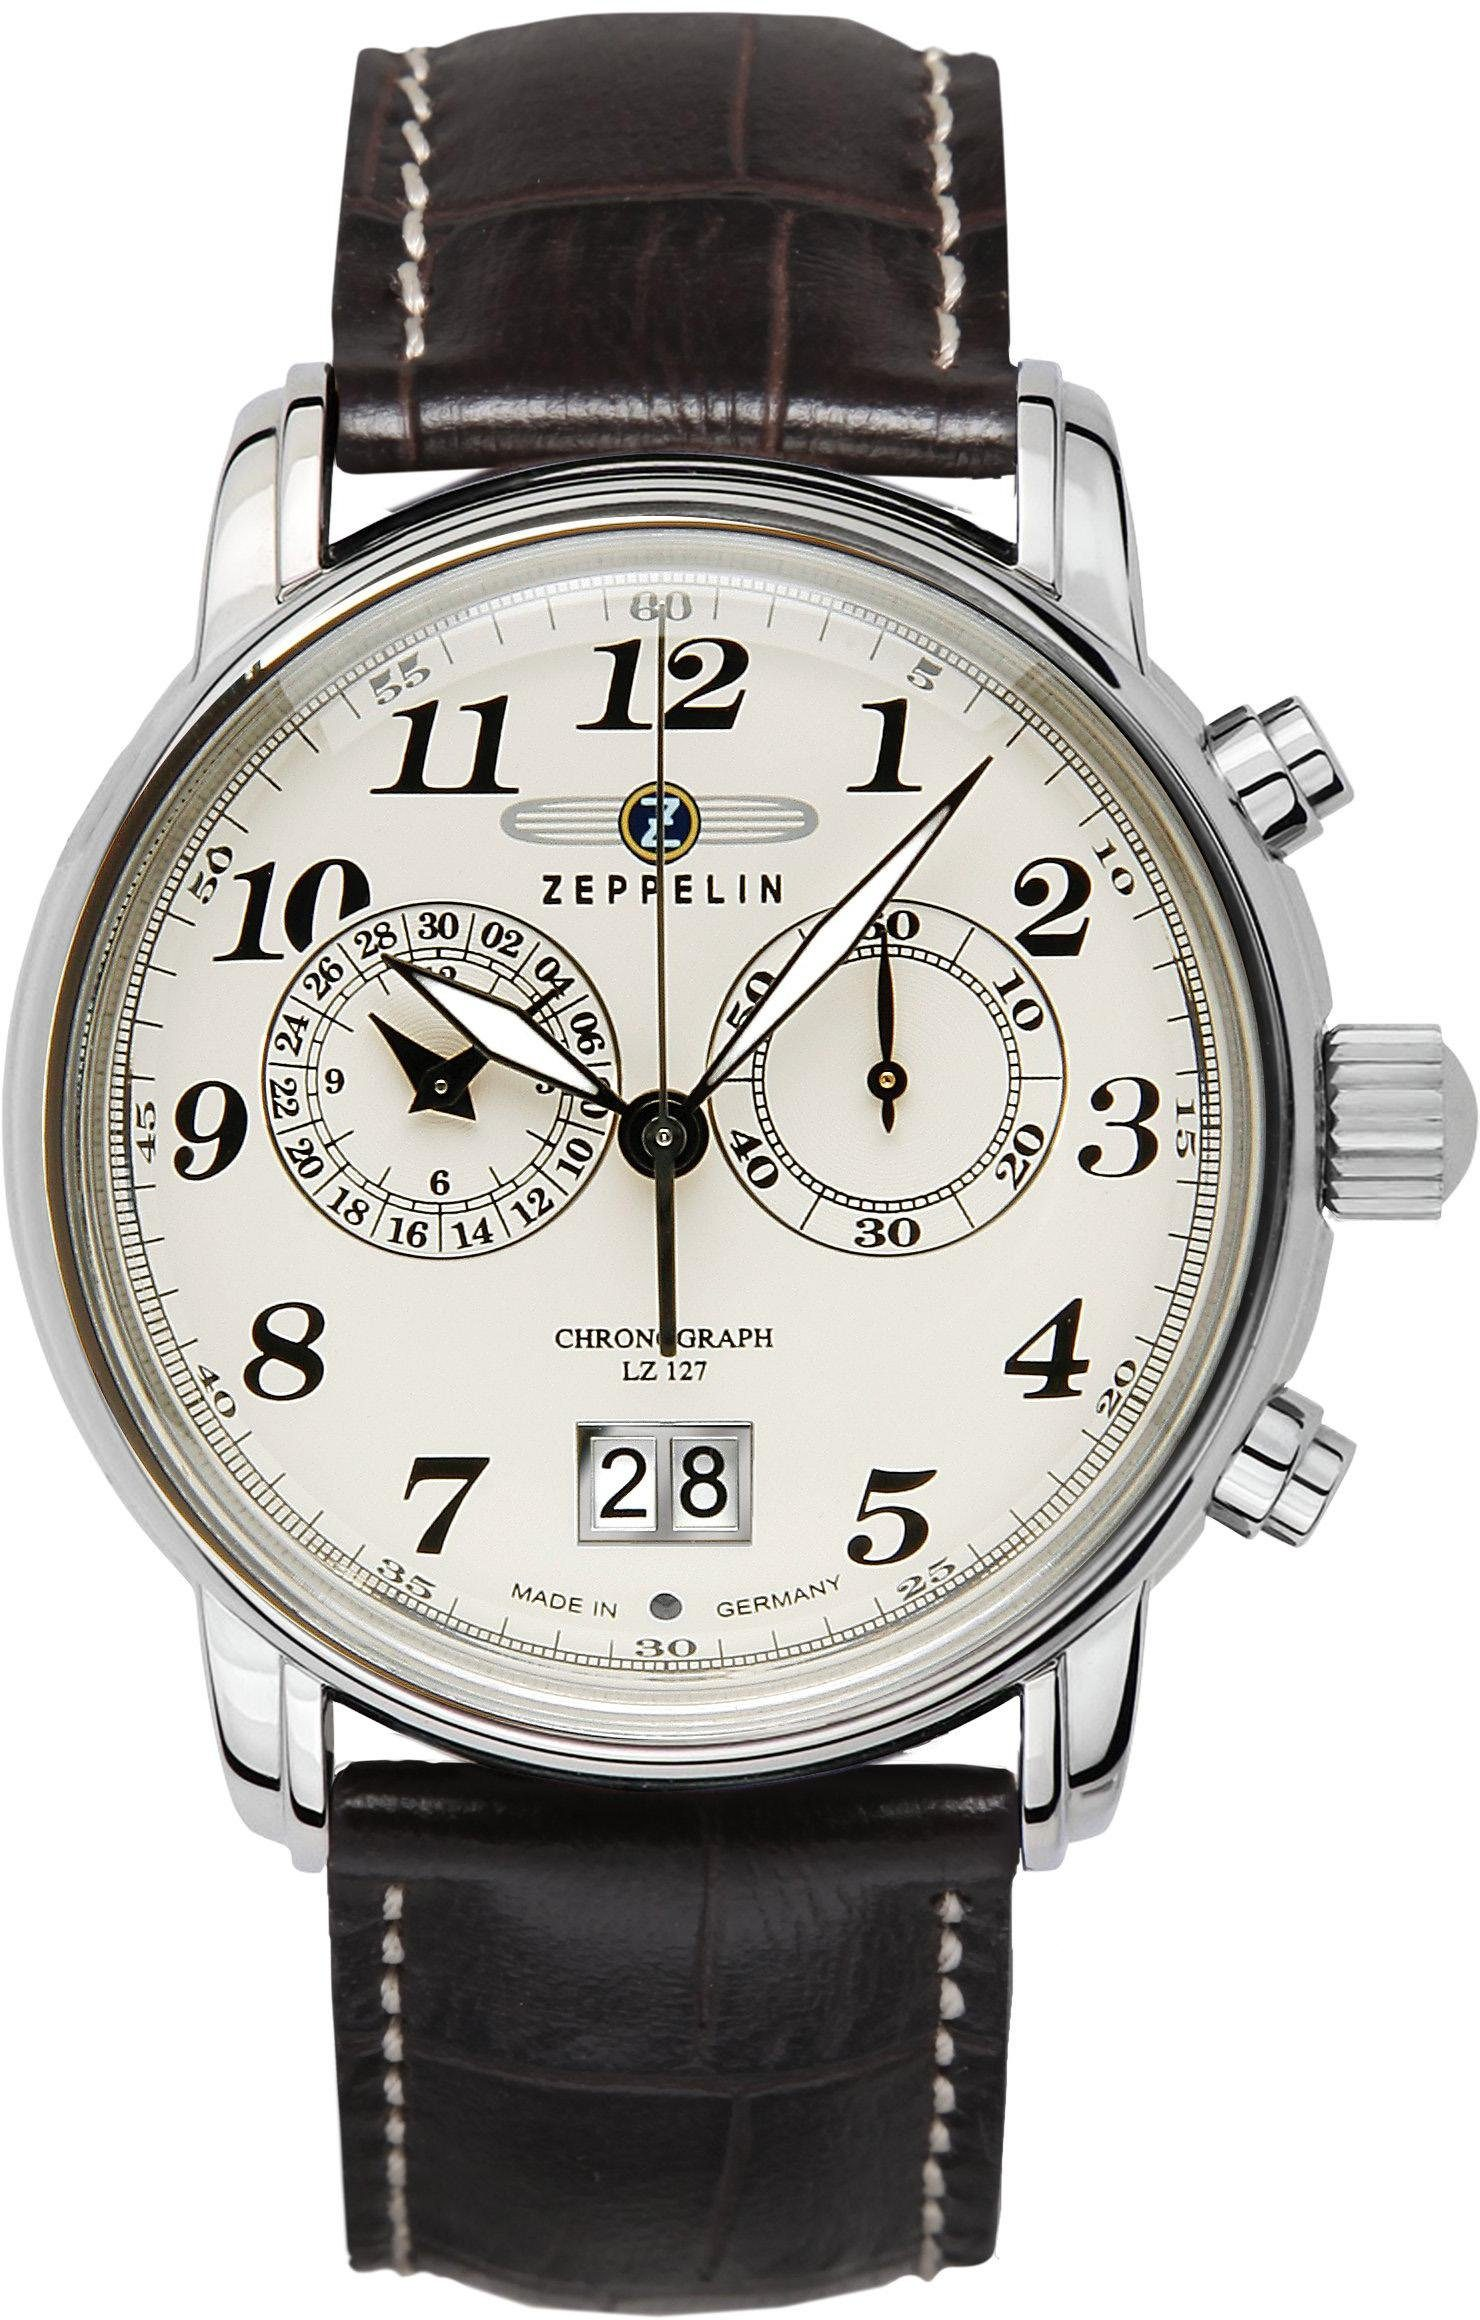 ZEPPELIN Chronograph »Graf Zeppelin, 7684-5«, Made in Germany